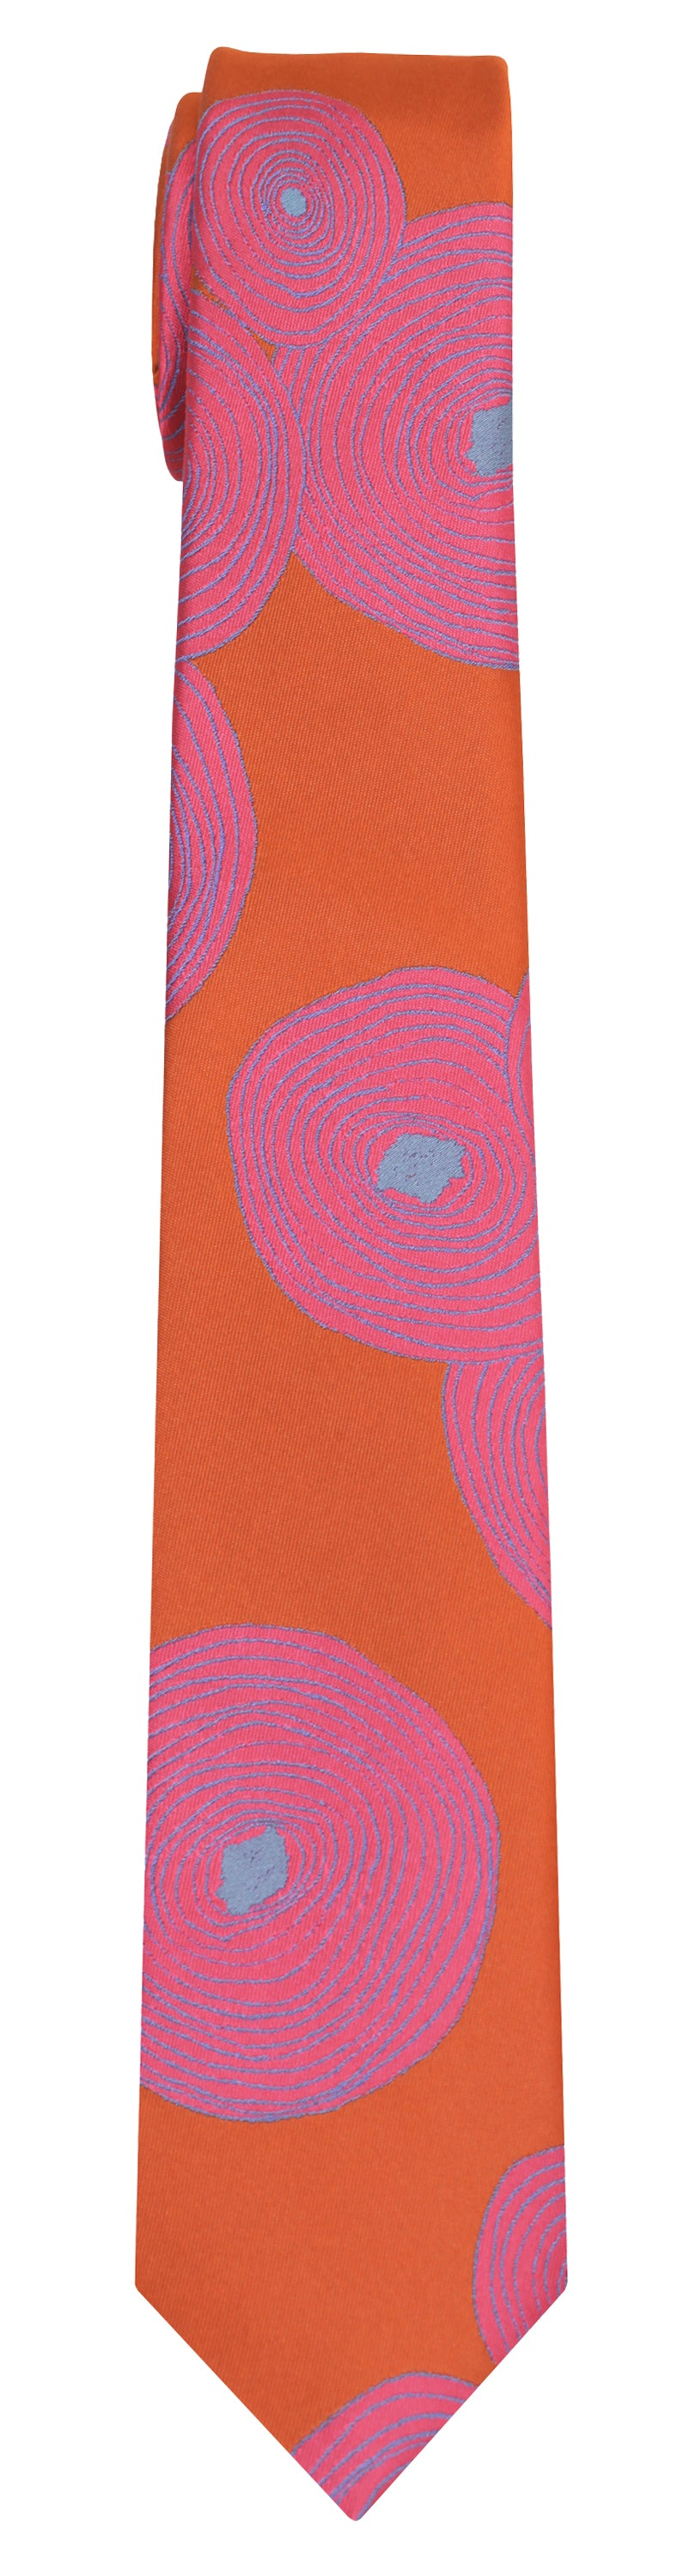 Mimi Fong Tree Rings Tie in Orange